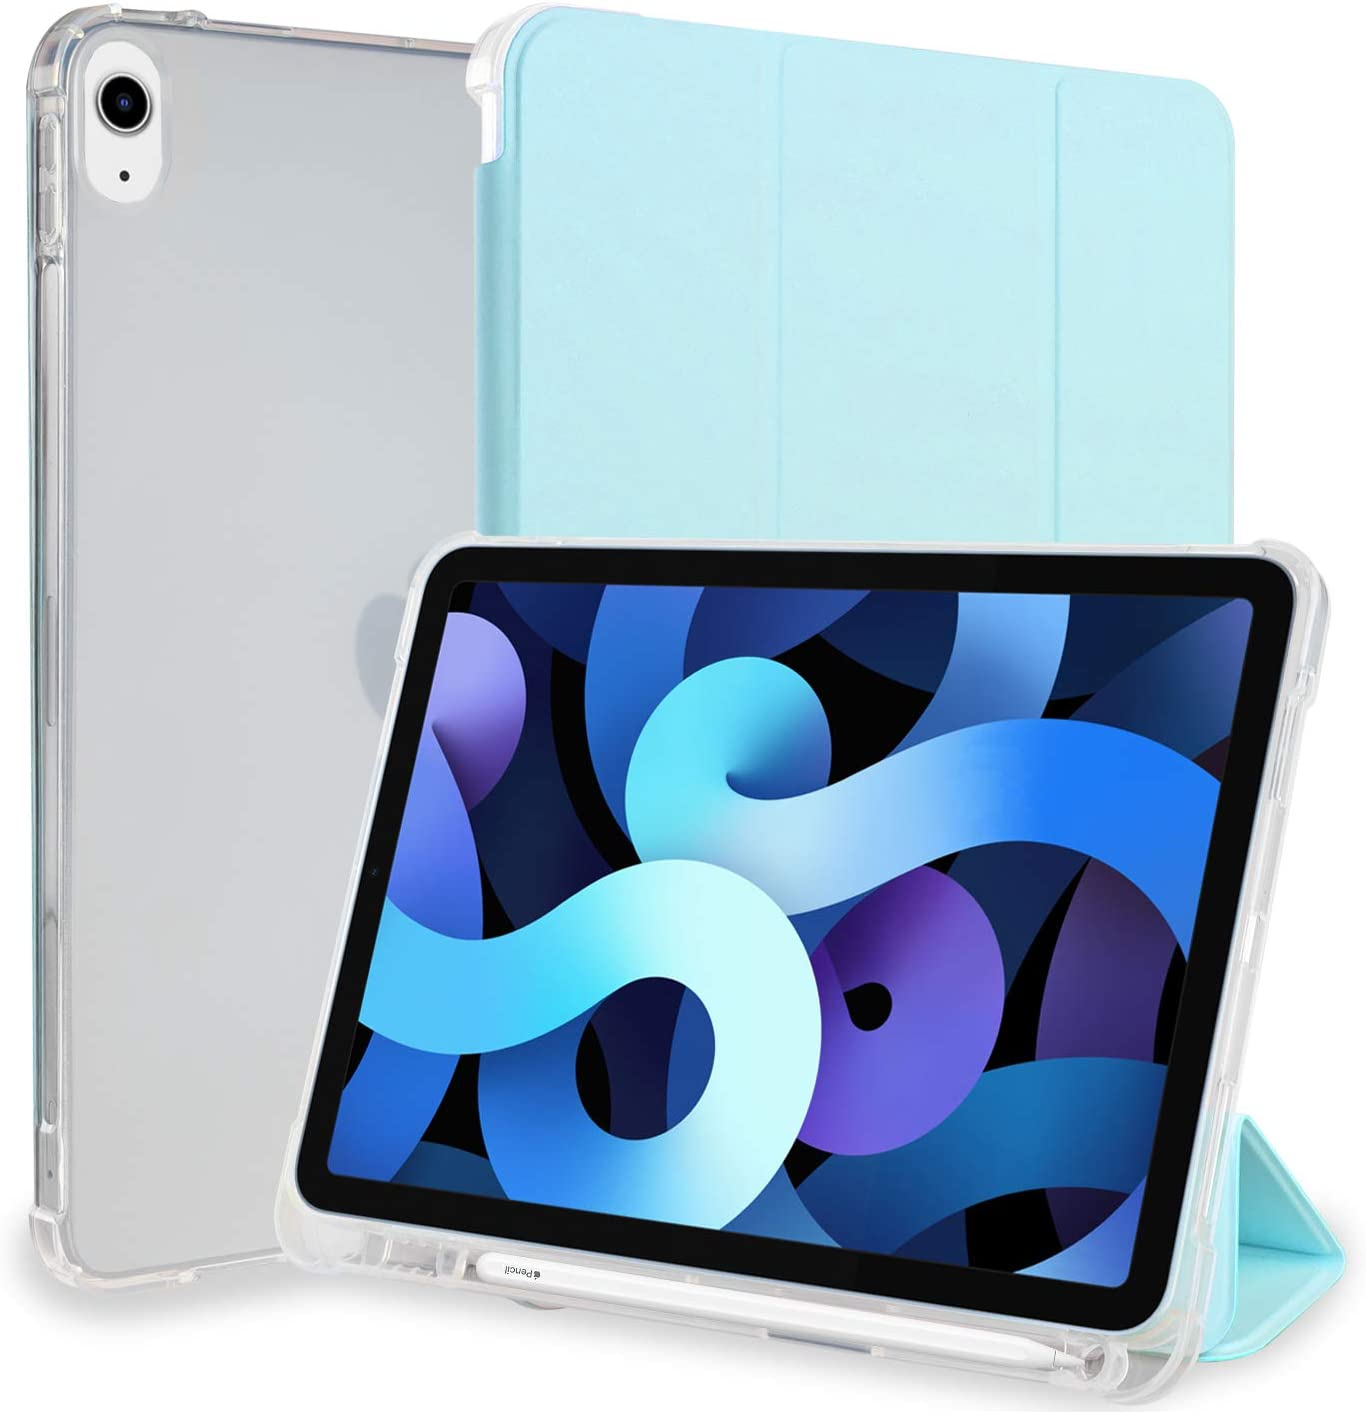 Neepanda Case for iPad Air 4th Gen 10.9 Inch 2020 with Pencil Holder, [Supports 2nd Gen Pencil Charging] Soft TPU Translucent Frosted Back, Smart Trifold Stand Cover Case, Sky Blue